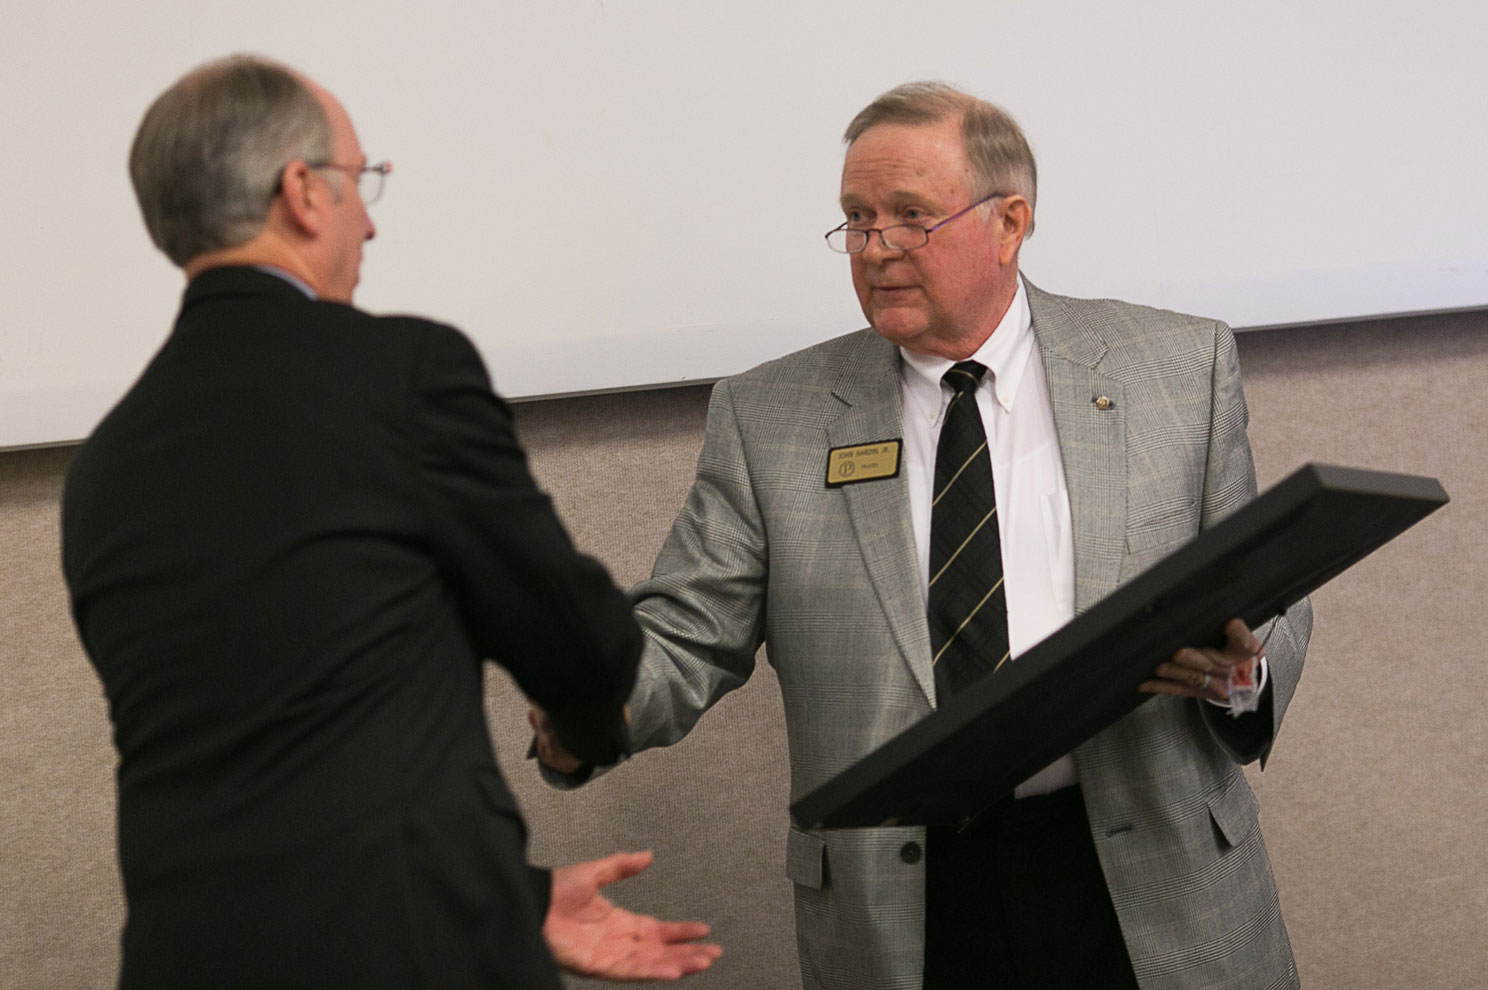 Chancellor Bantz honored by Purdue Board of Trustees